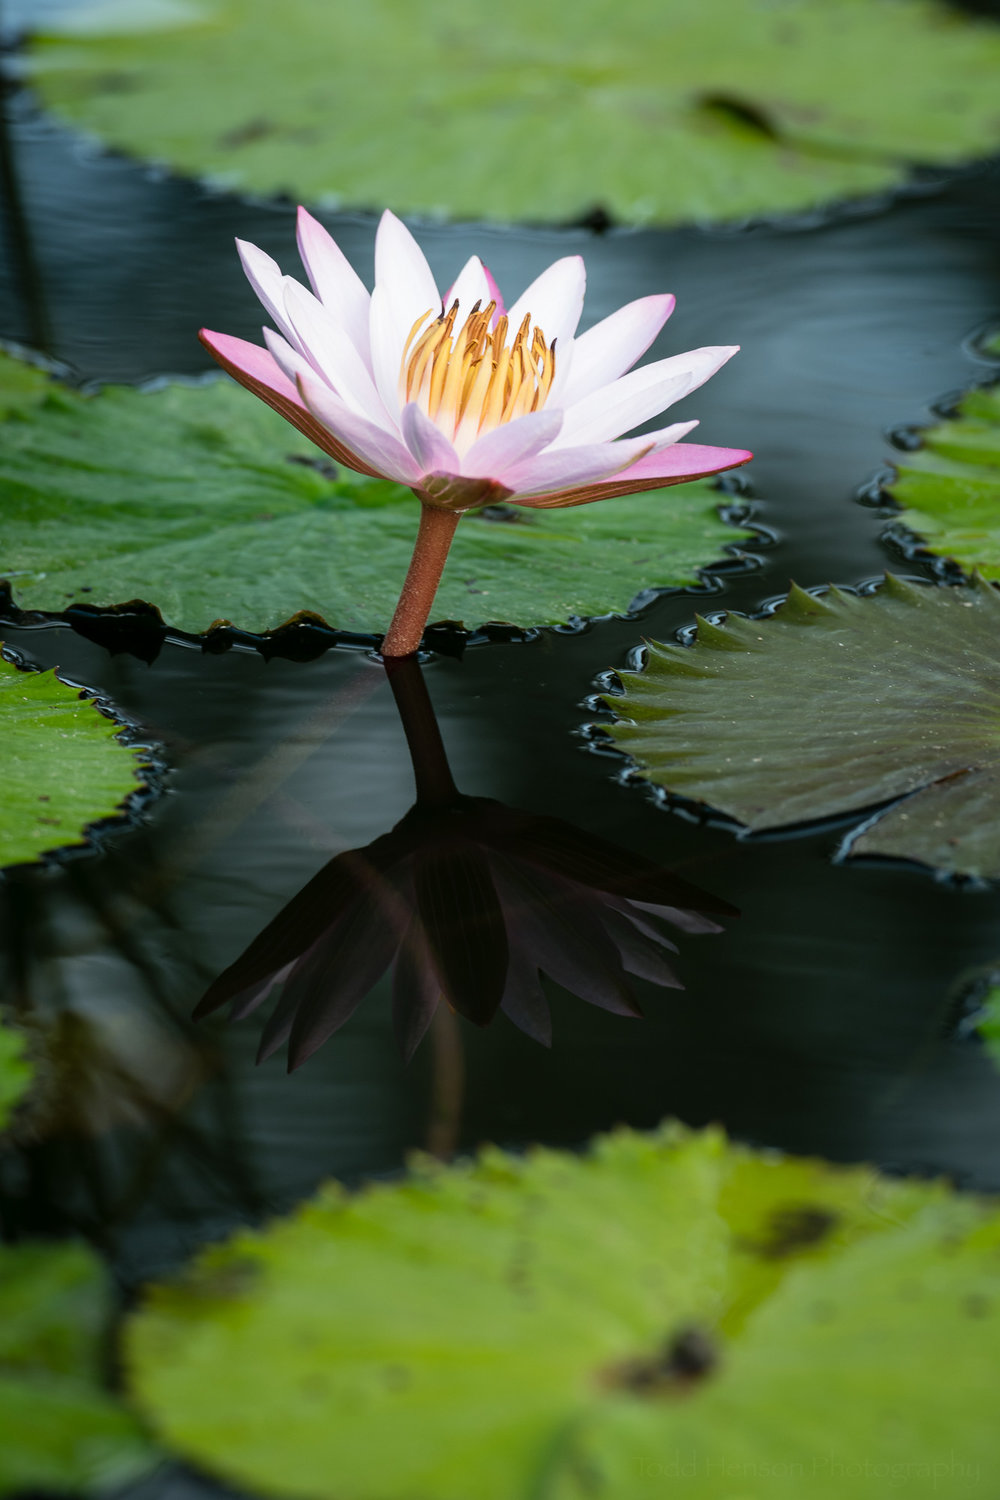 Pink water lily with maximum polarizing effect. I like the saturated colors of the green lily pads and the flower.